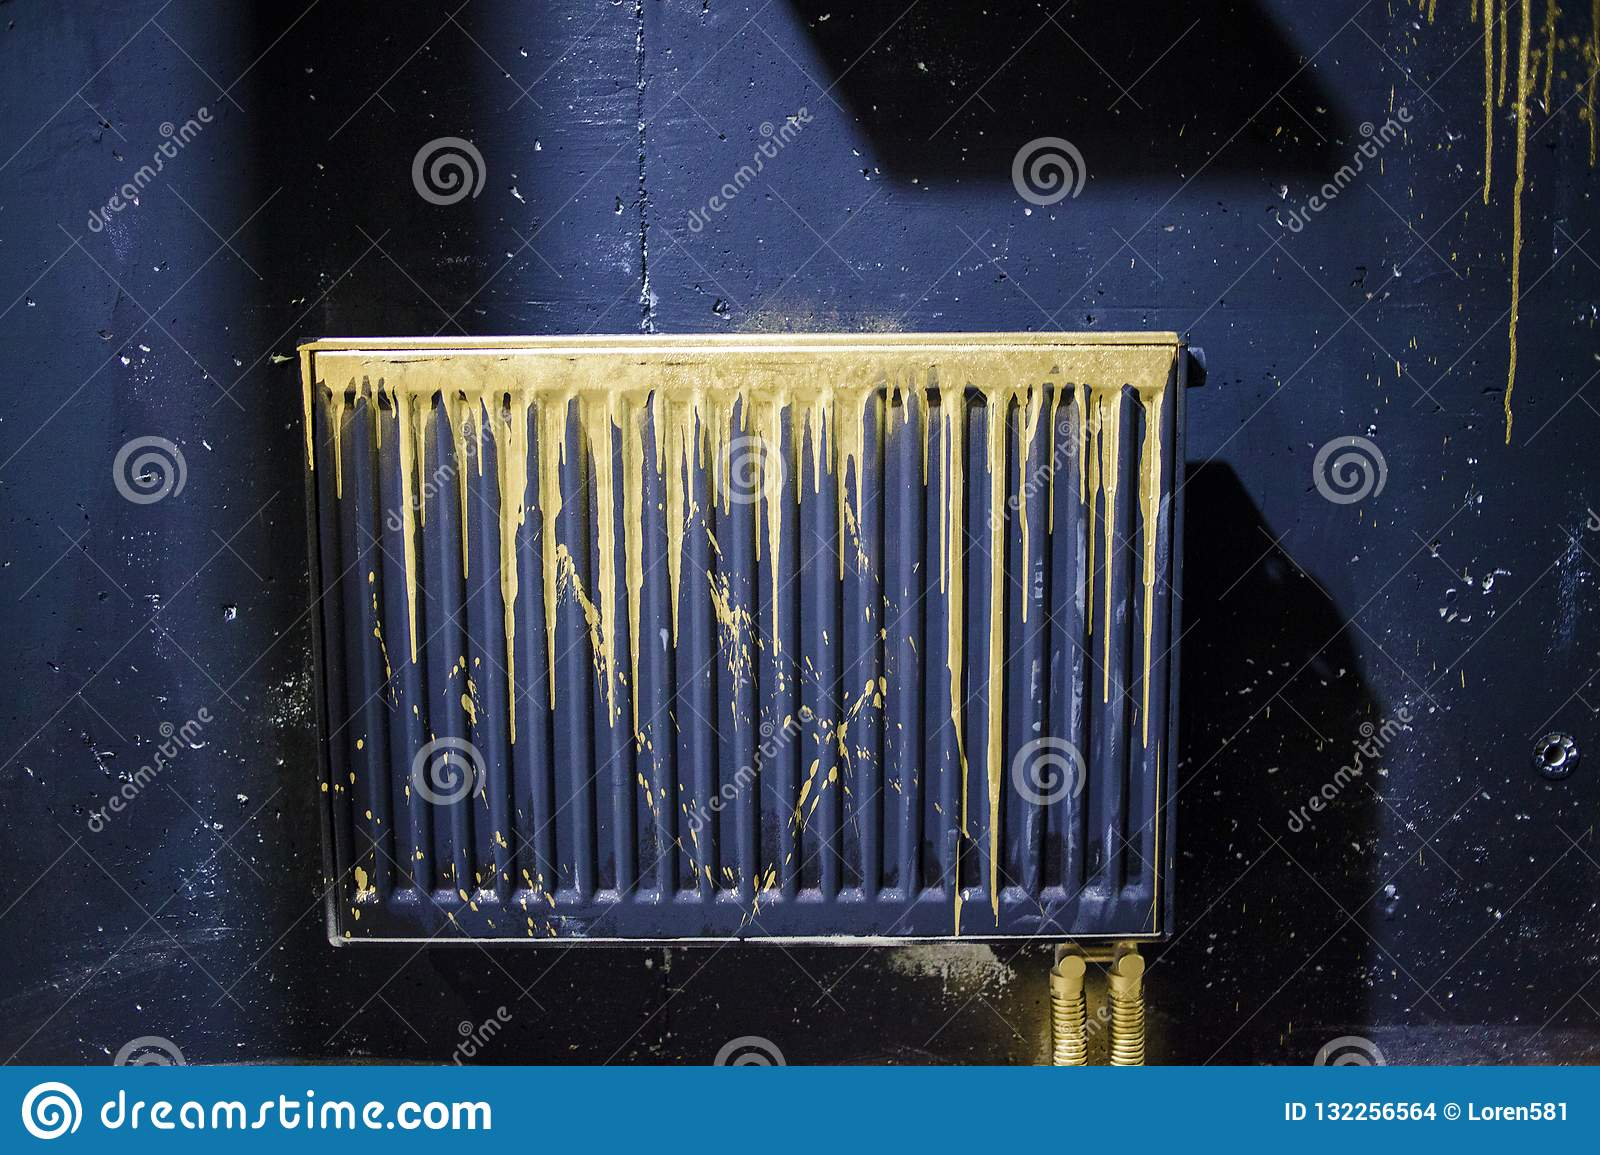 A Radiator Painted Black With Gold Streaks Of Paint Stock Photo Image Of Closeup Surface 132256564